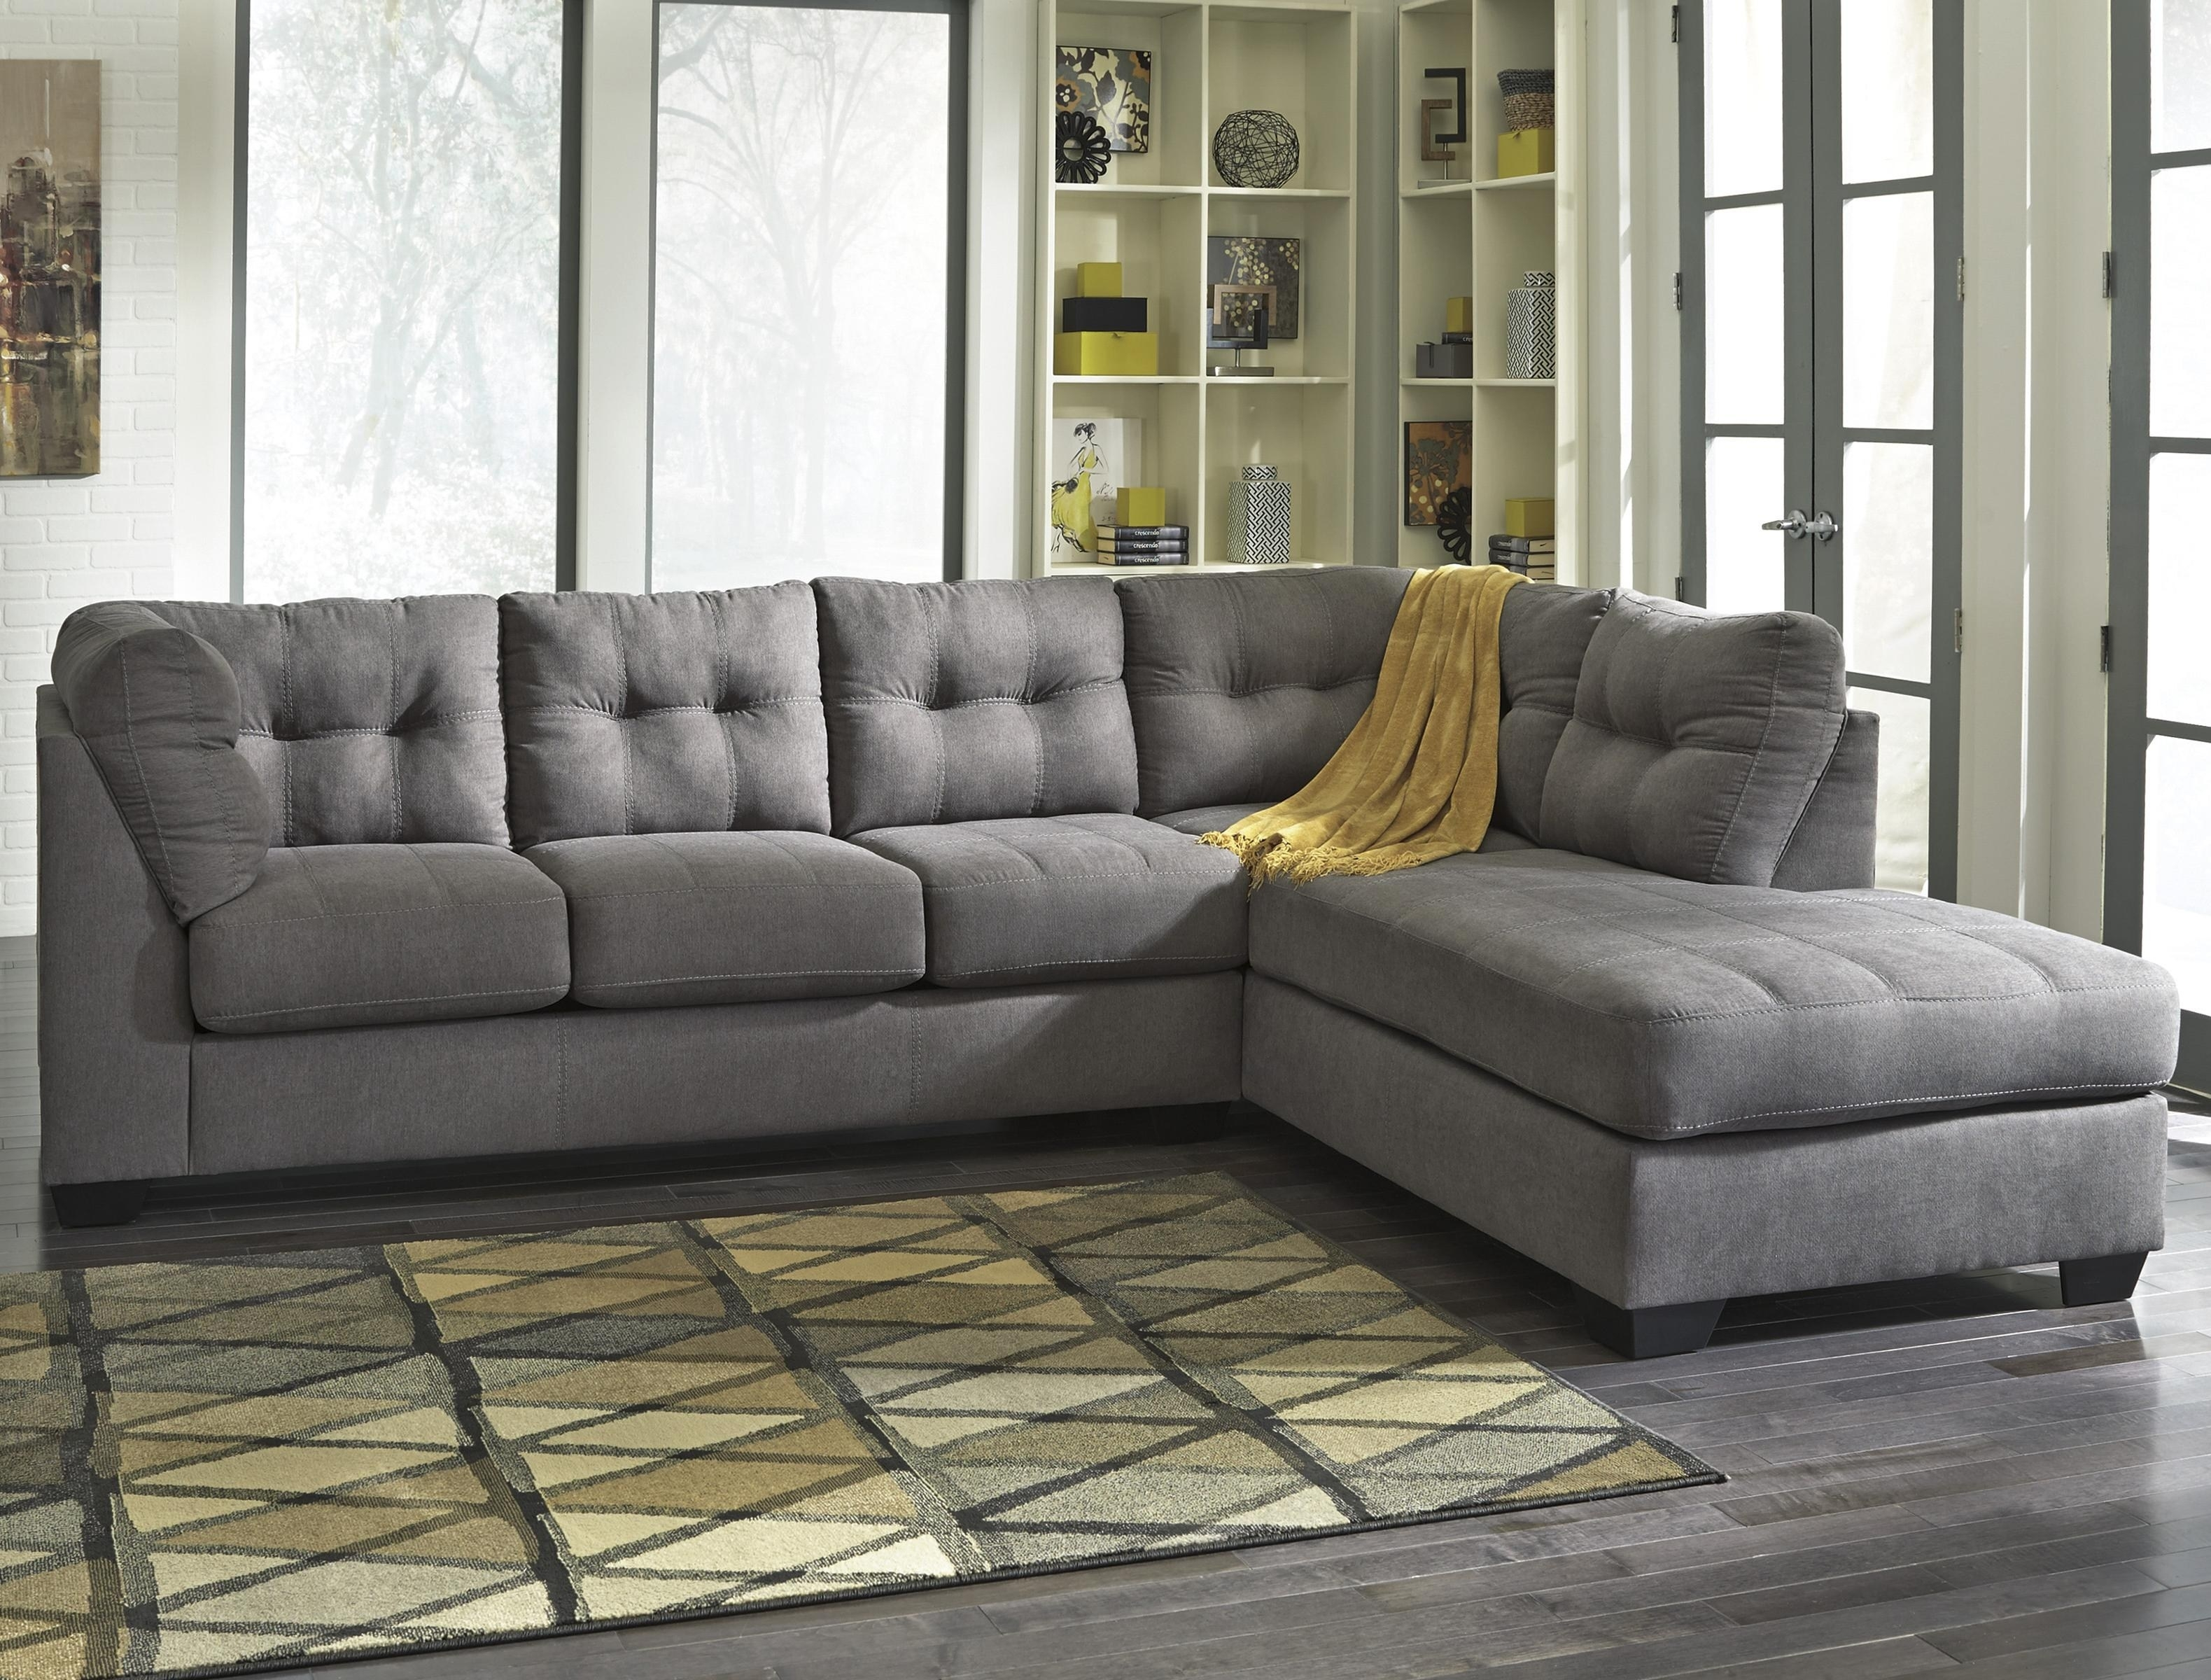 What To Know Before Buying A 3 Piece Sectional Sofa   Elites Home Decor Inside Kerri 2 Piece Sectionals With Laf Chaise (Photo 14 of 30)